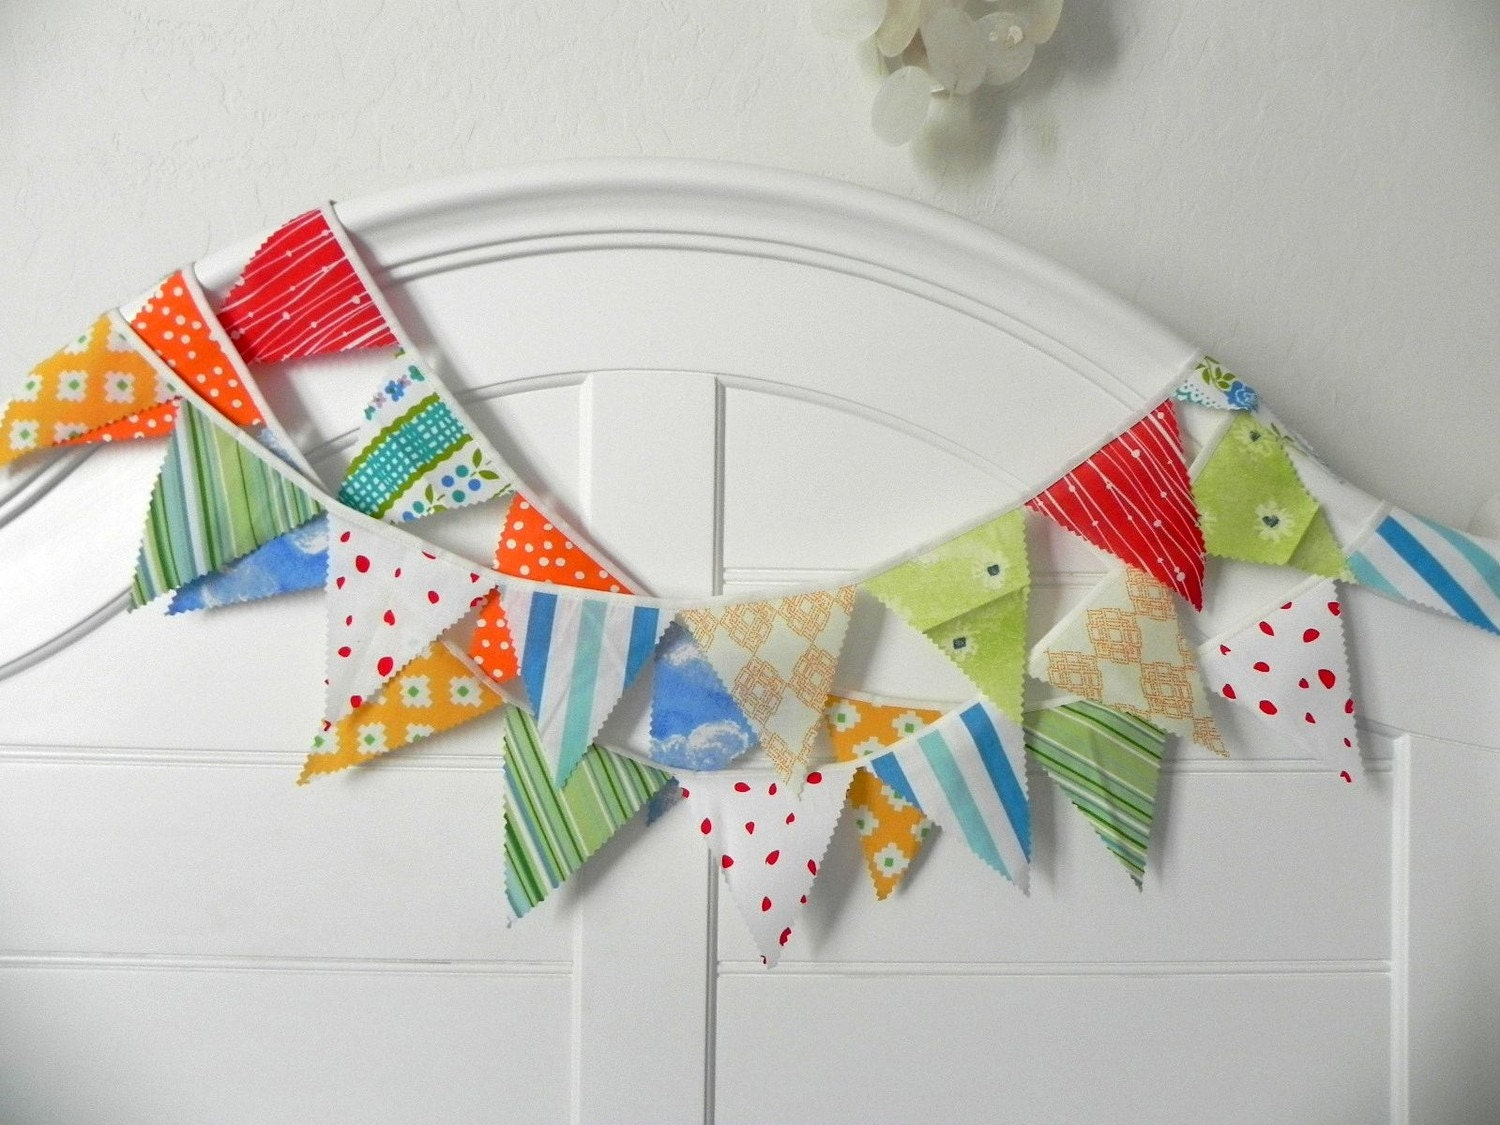 Faisons La Fête Fabric Bunting Decoration 9'